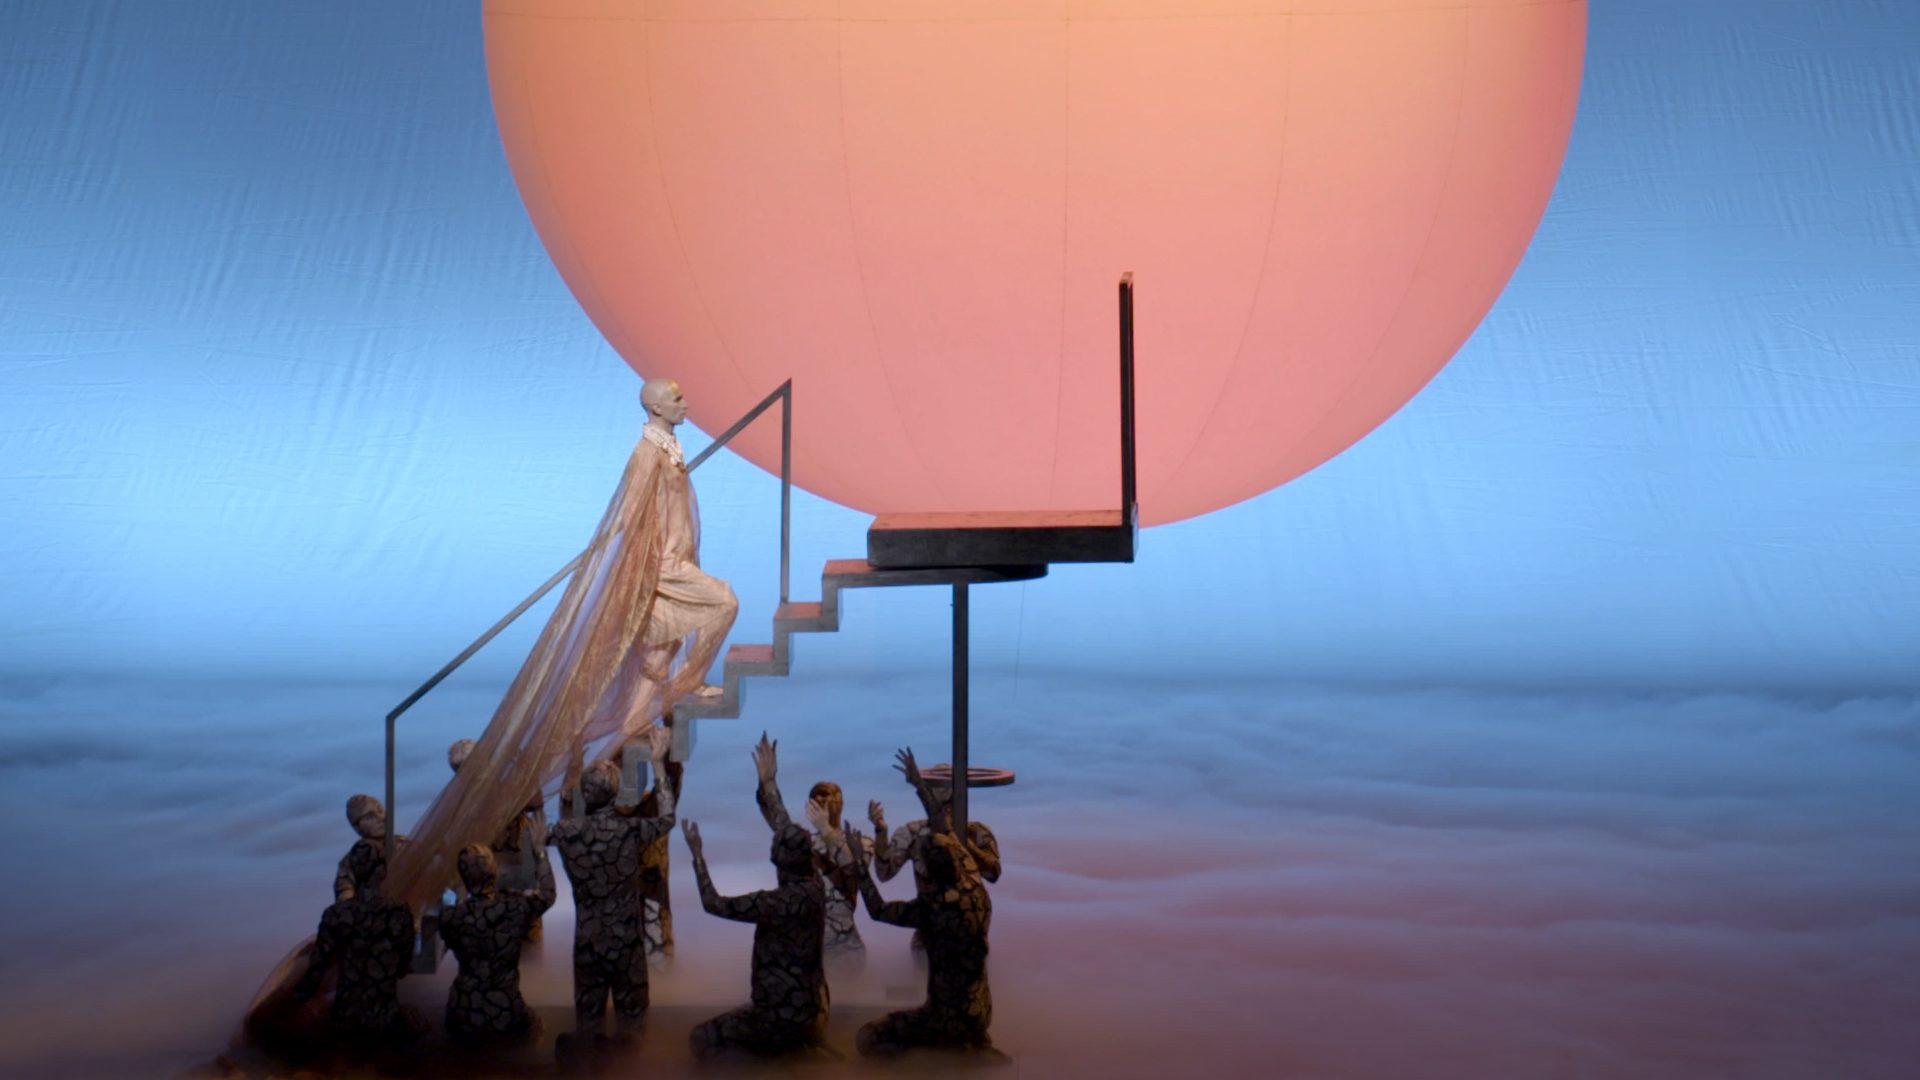 Akhnaten, played by Anthony Roth Costanzo, ascends steps to the sun, during a dress rehearsal for the opera.